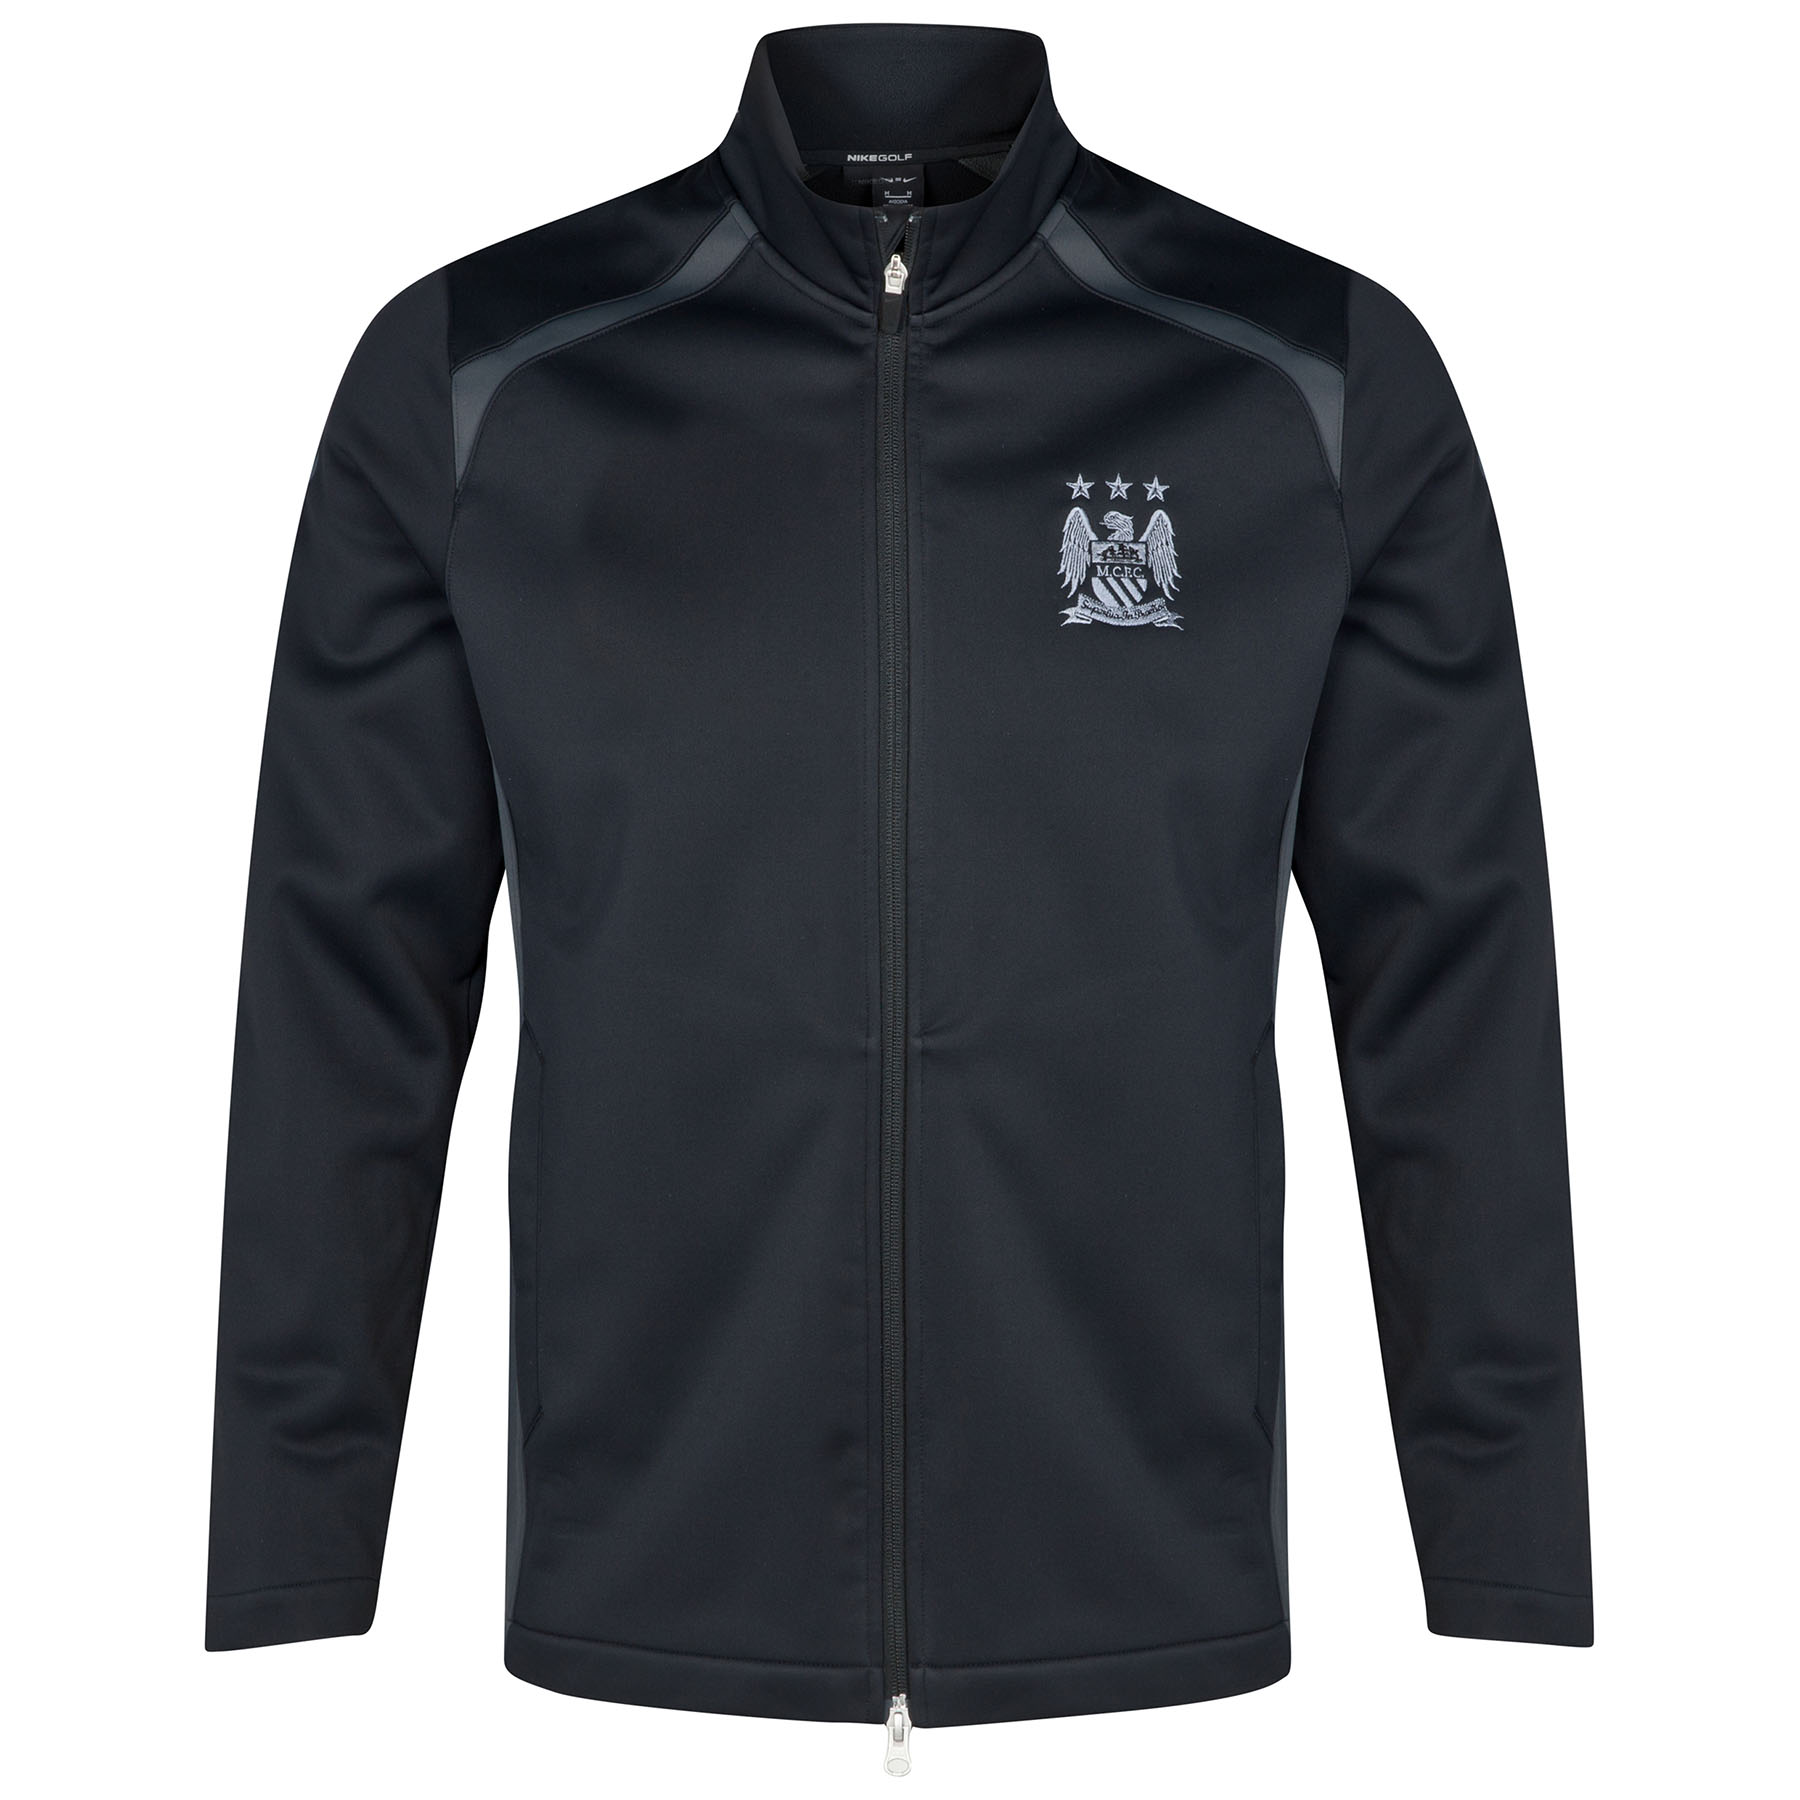 Manchester City Wind Resist Therma Fit Jacket Black